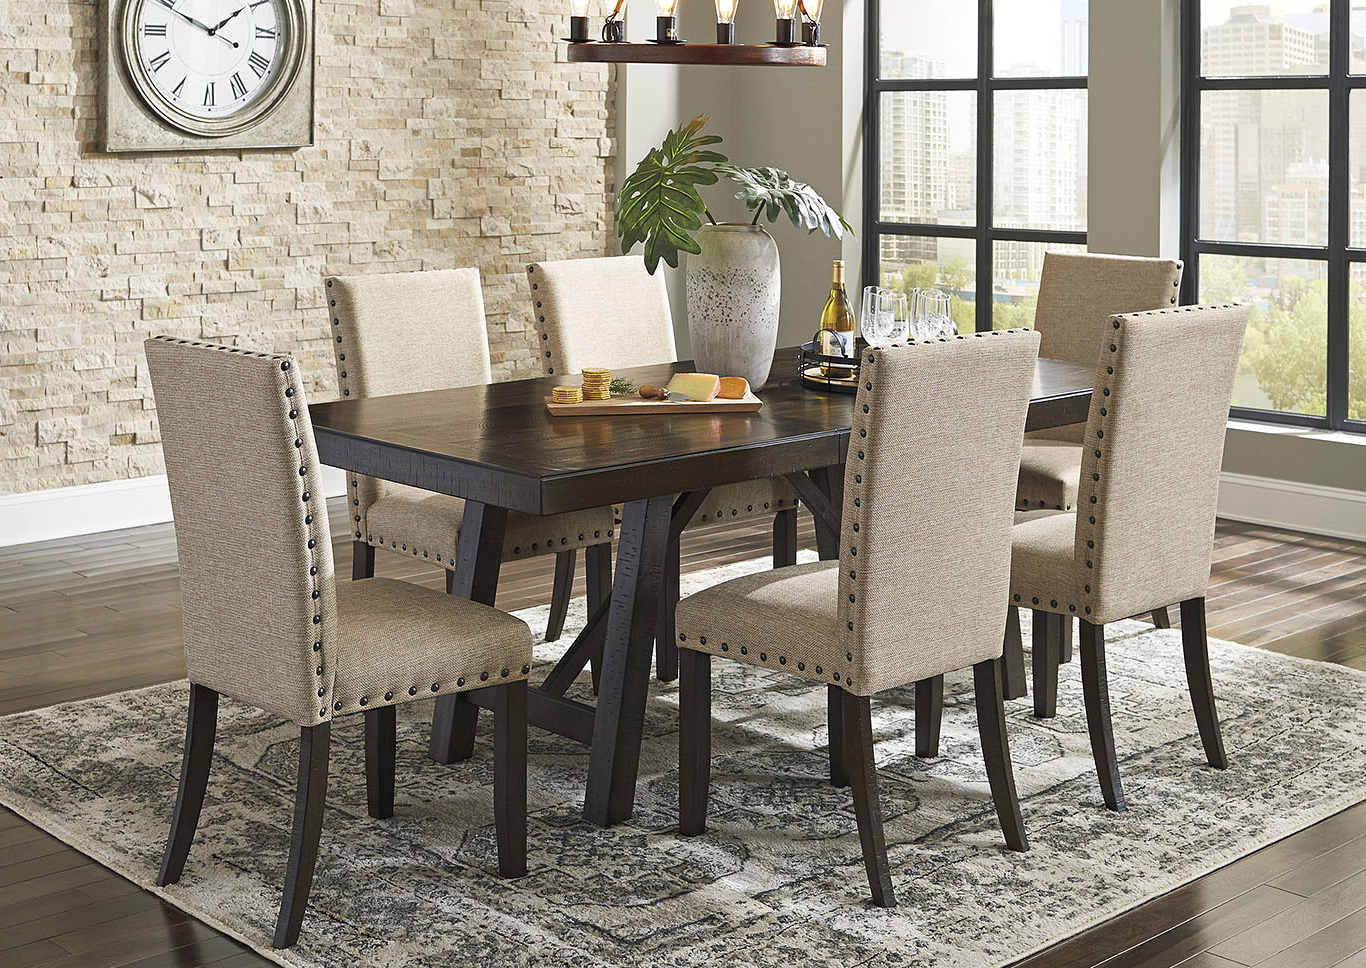 2020 Transitional 6 Seating Casual Dining Tables Intended For Bargain Furniture & Appliances – Mi Rokane Light Brown (View 10 of 25)